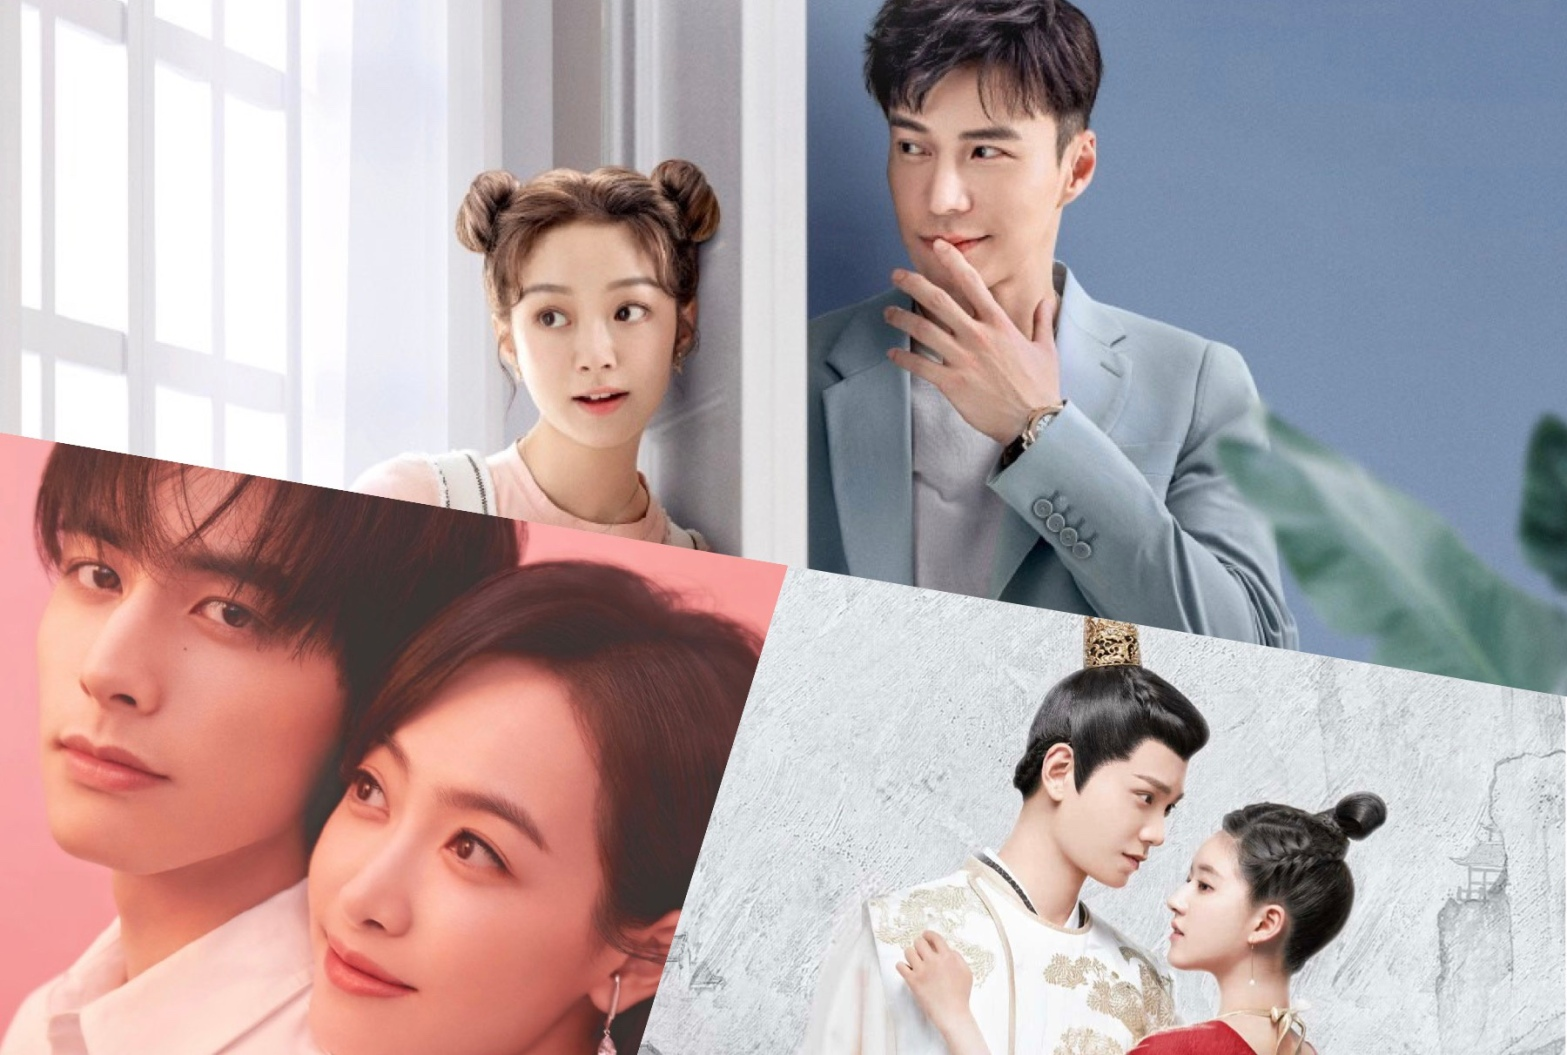 C-drama released in 2020 worth binge watching